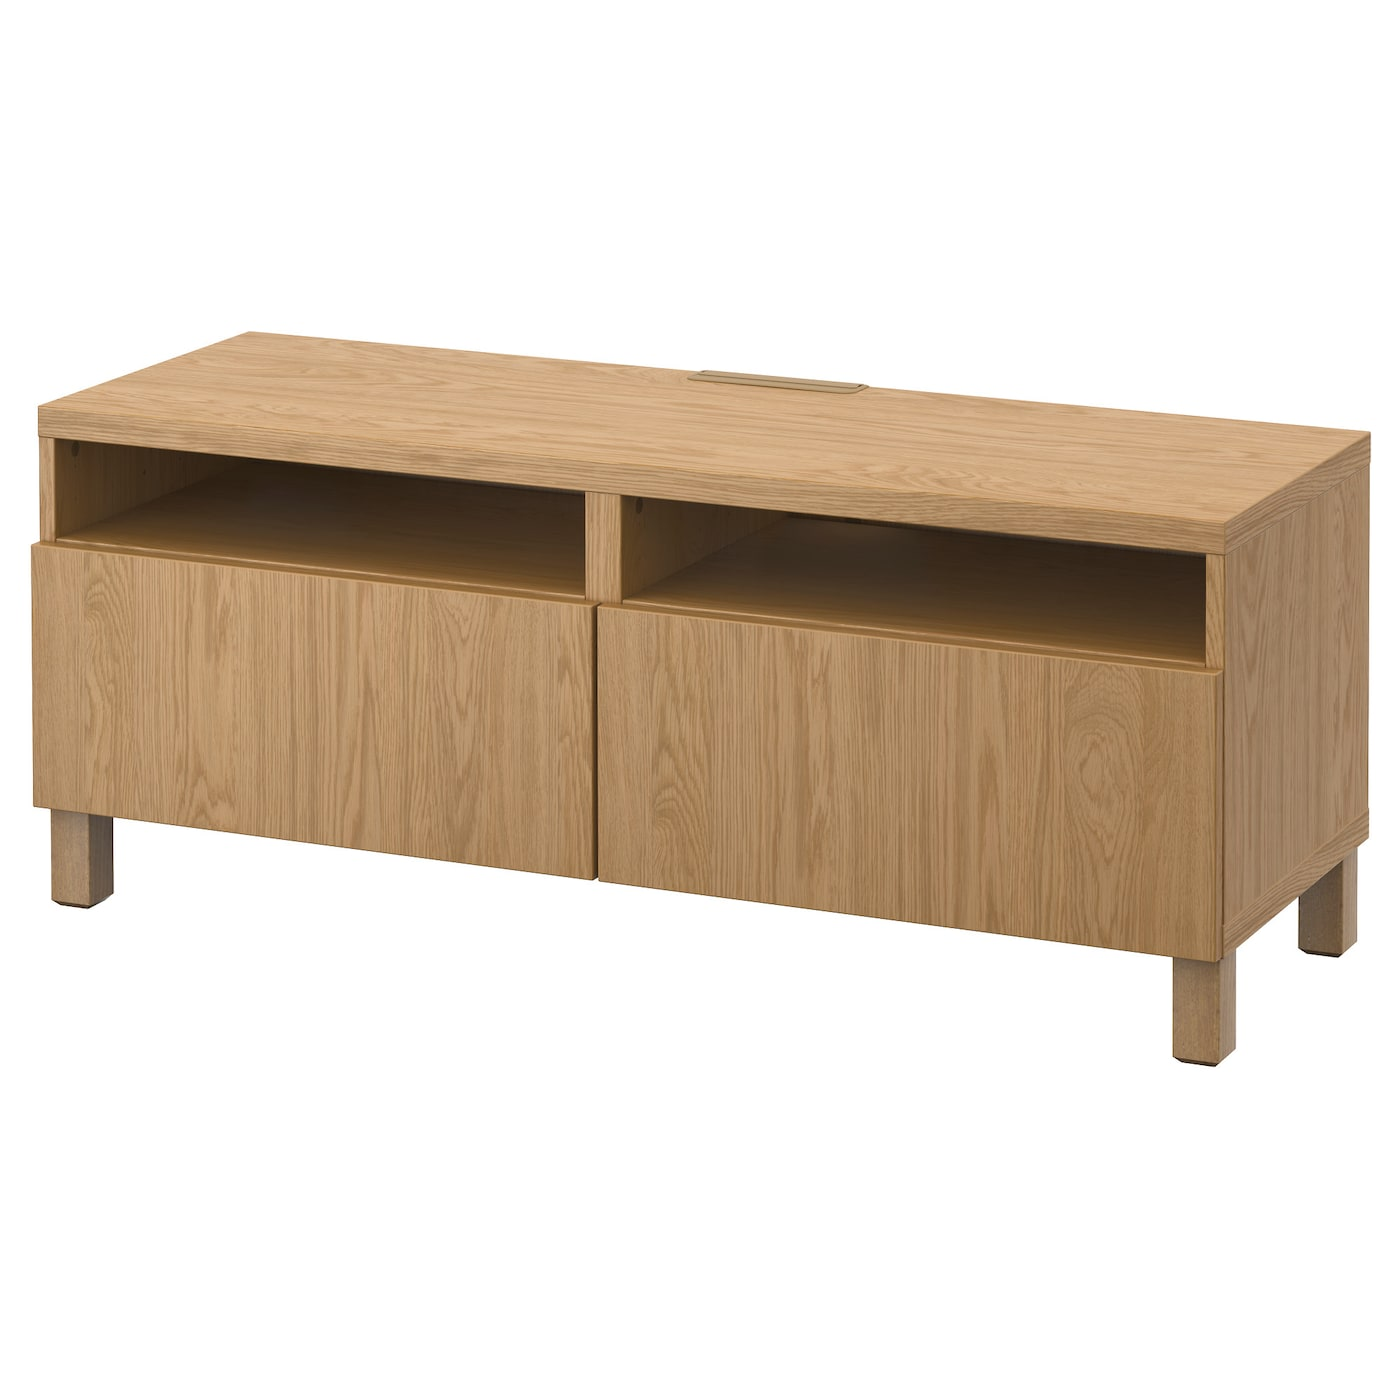 Best tv bench with drawers lappviken oak effect 120x40x48 Oak bench